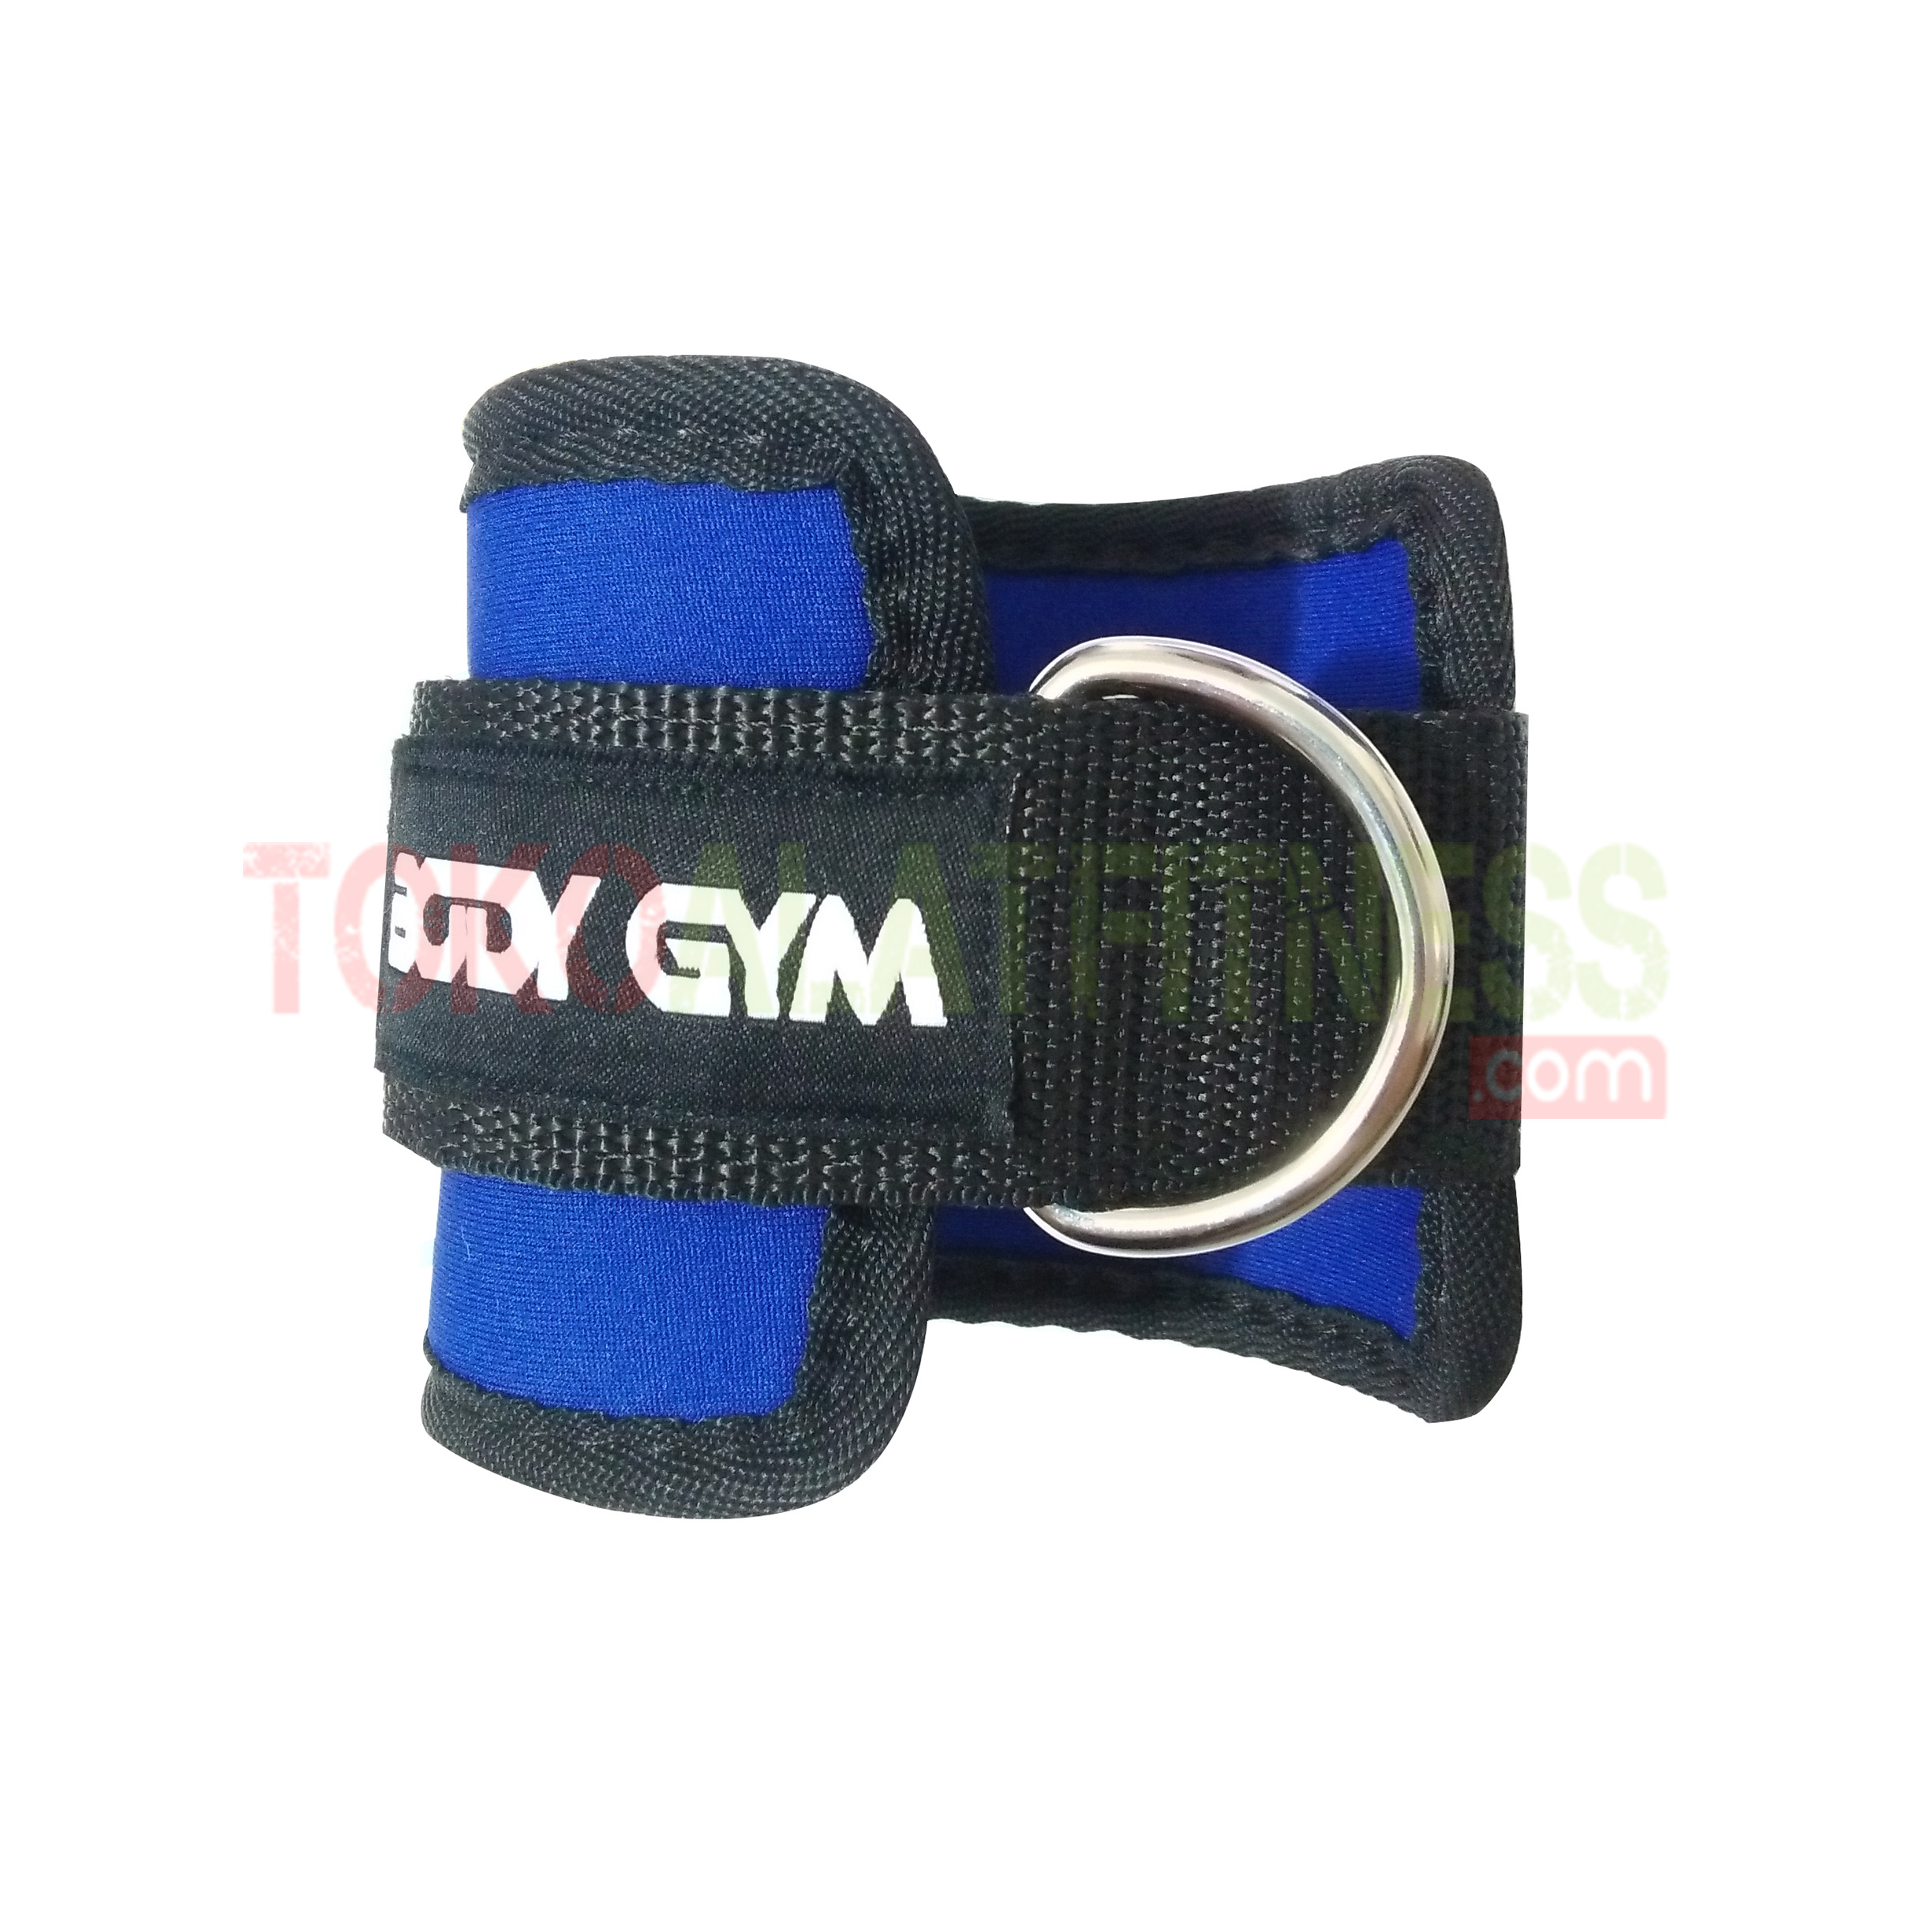 ankle strap lifting wtm - Ankle Lifting Strap Body Gym